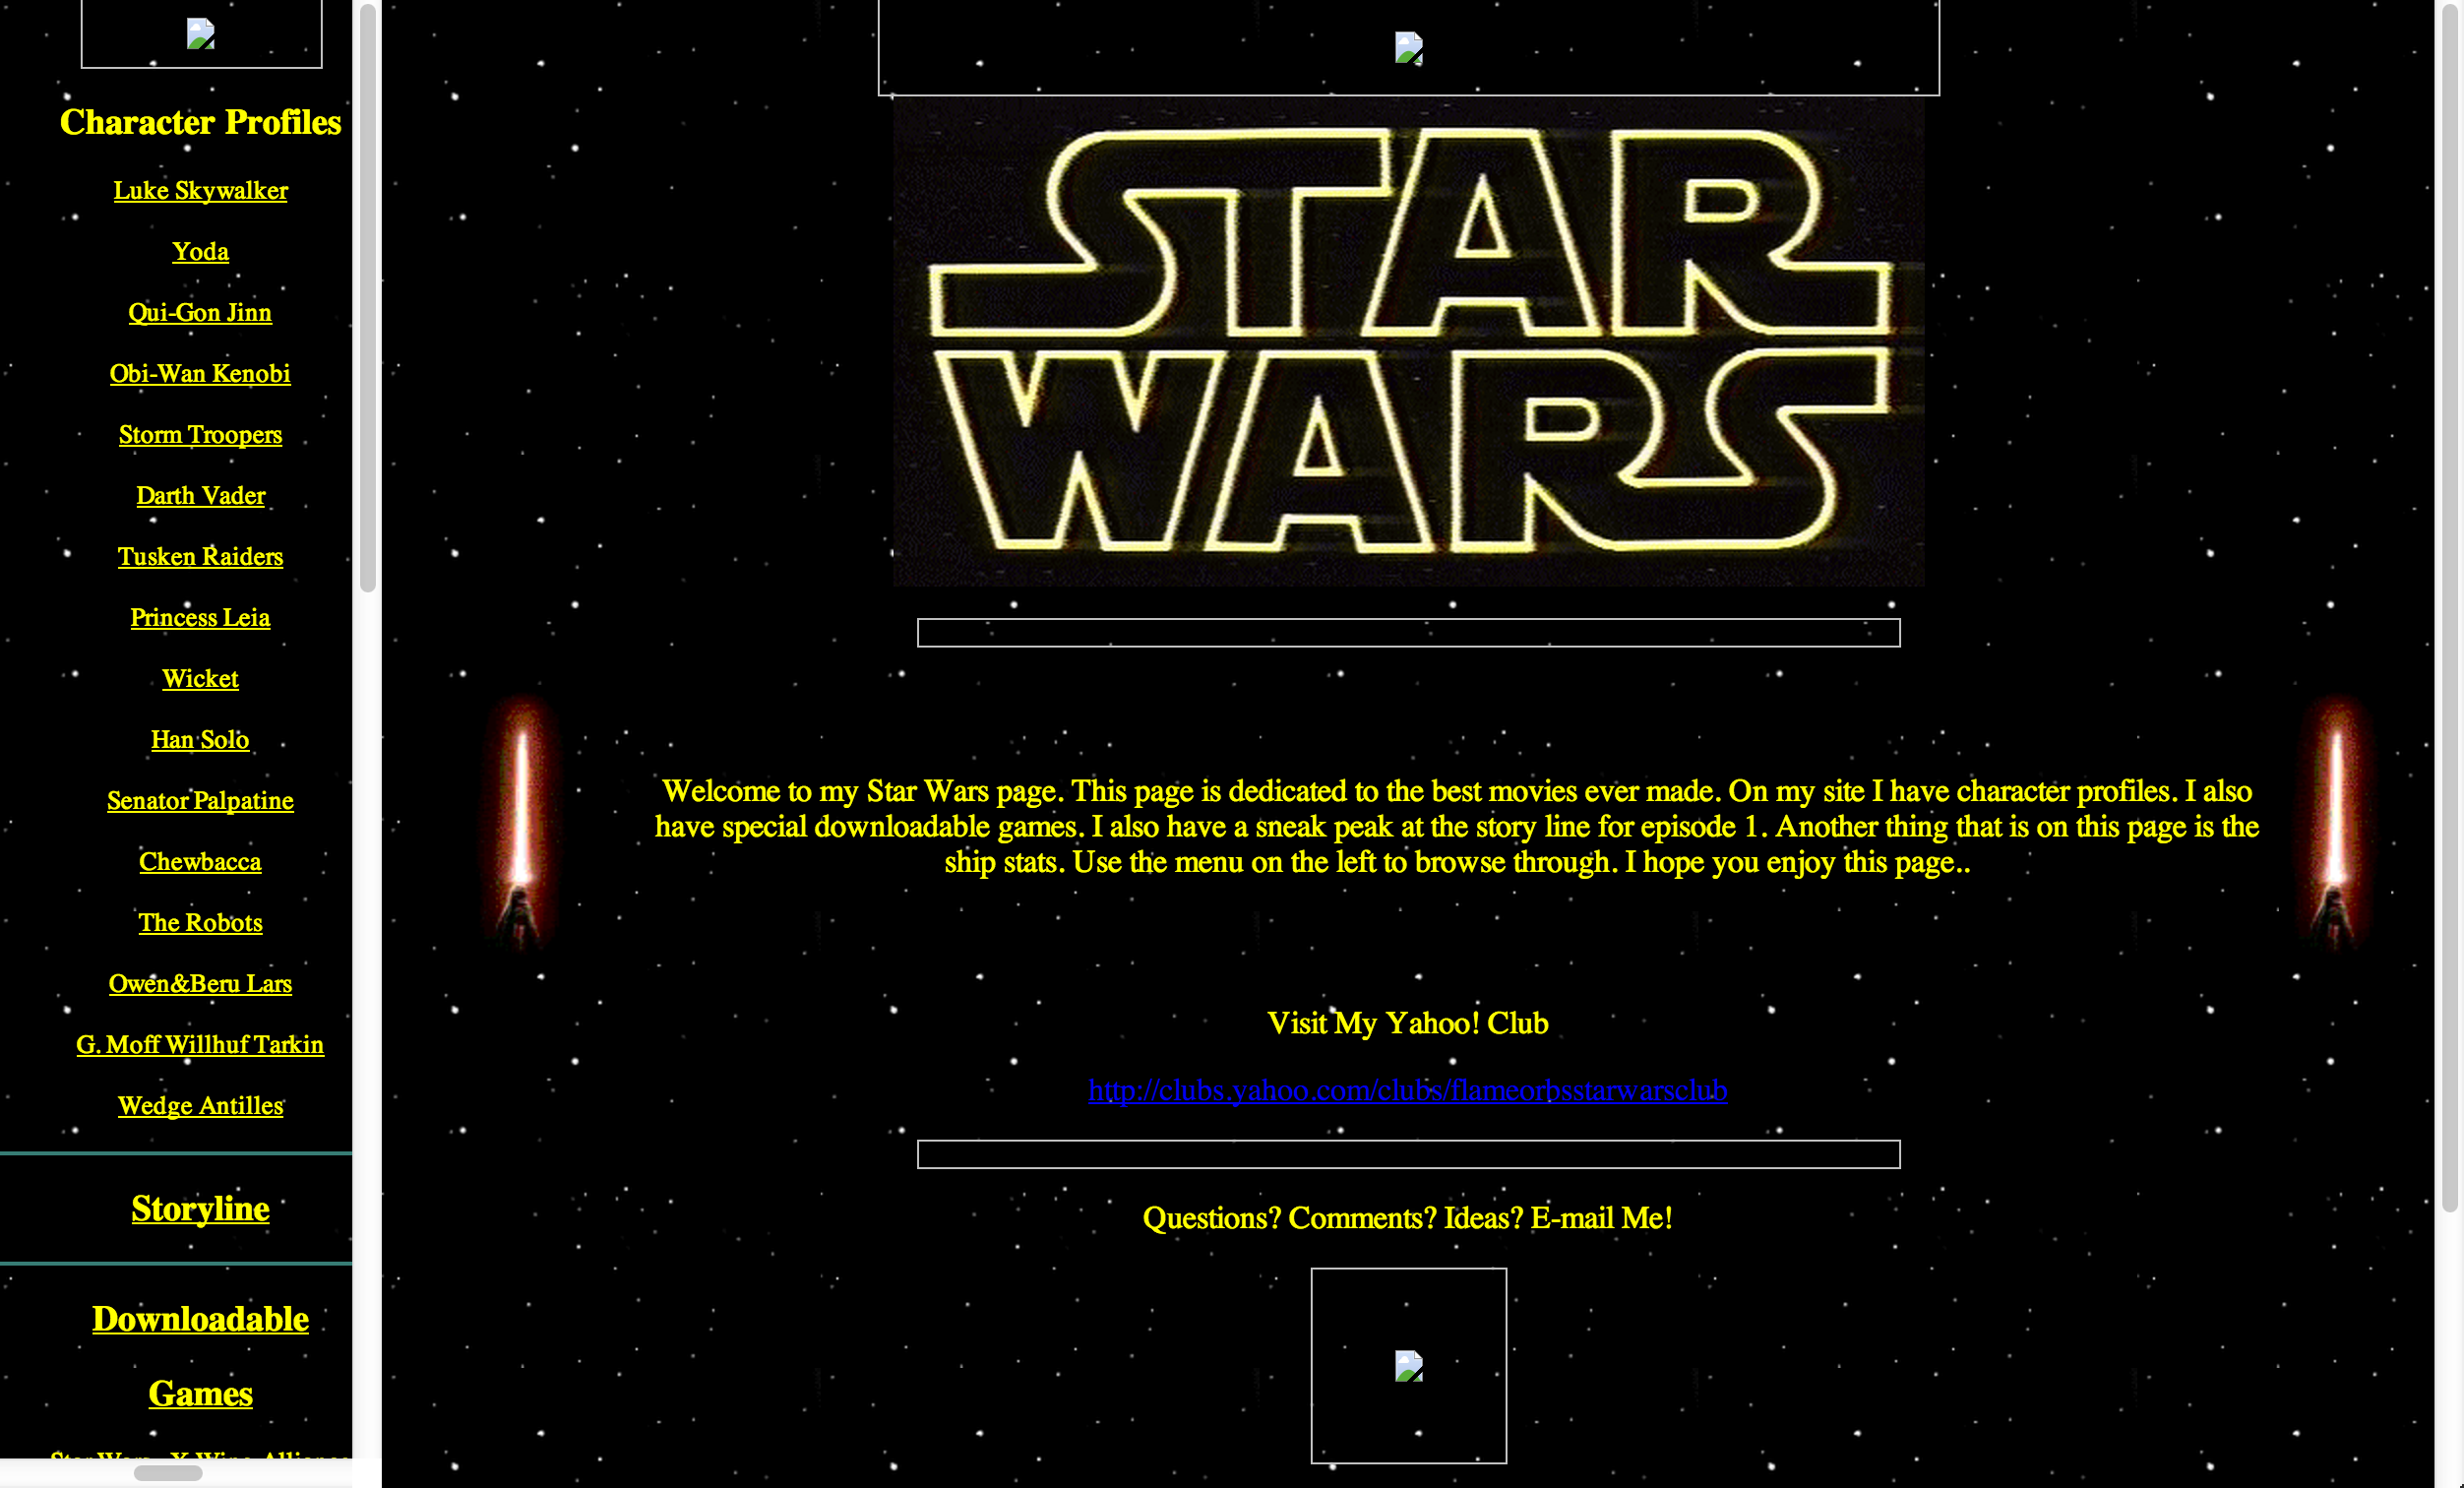 Star Wars Restoration: Main site with background